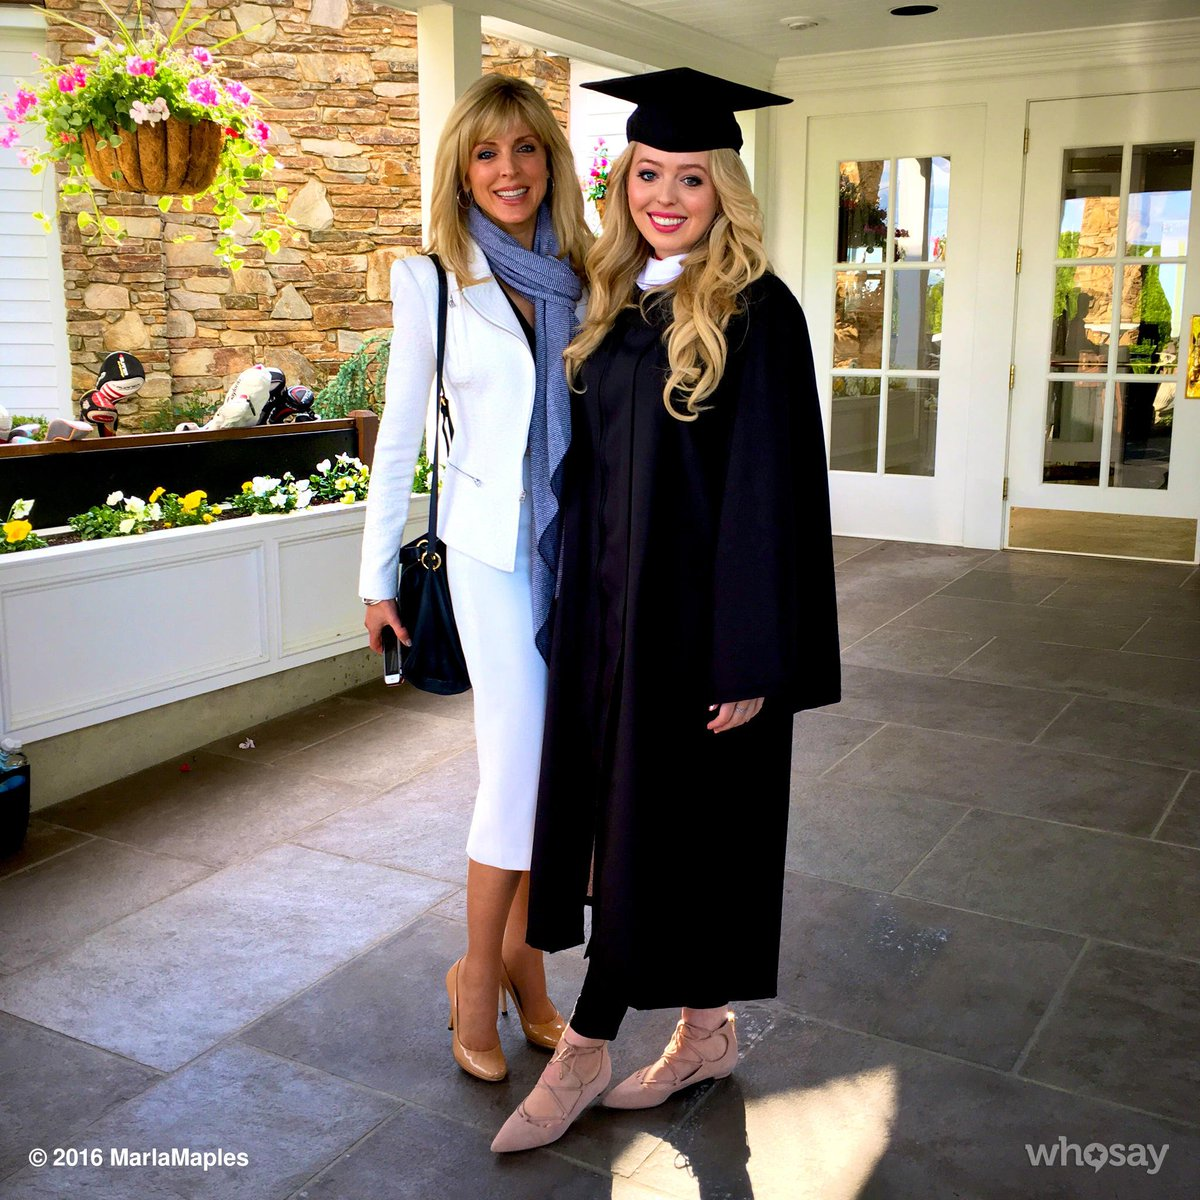 Pre #graduation2016 w/my beautiful, smart, dedicated to be her very best girl! I love u so @TiffanyATrump https://t.co/WcGeyXyuvH